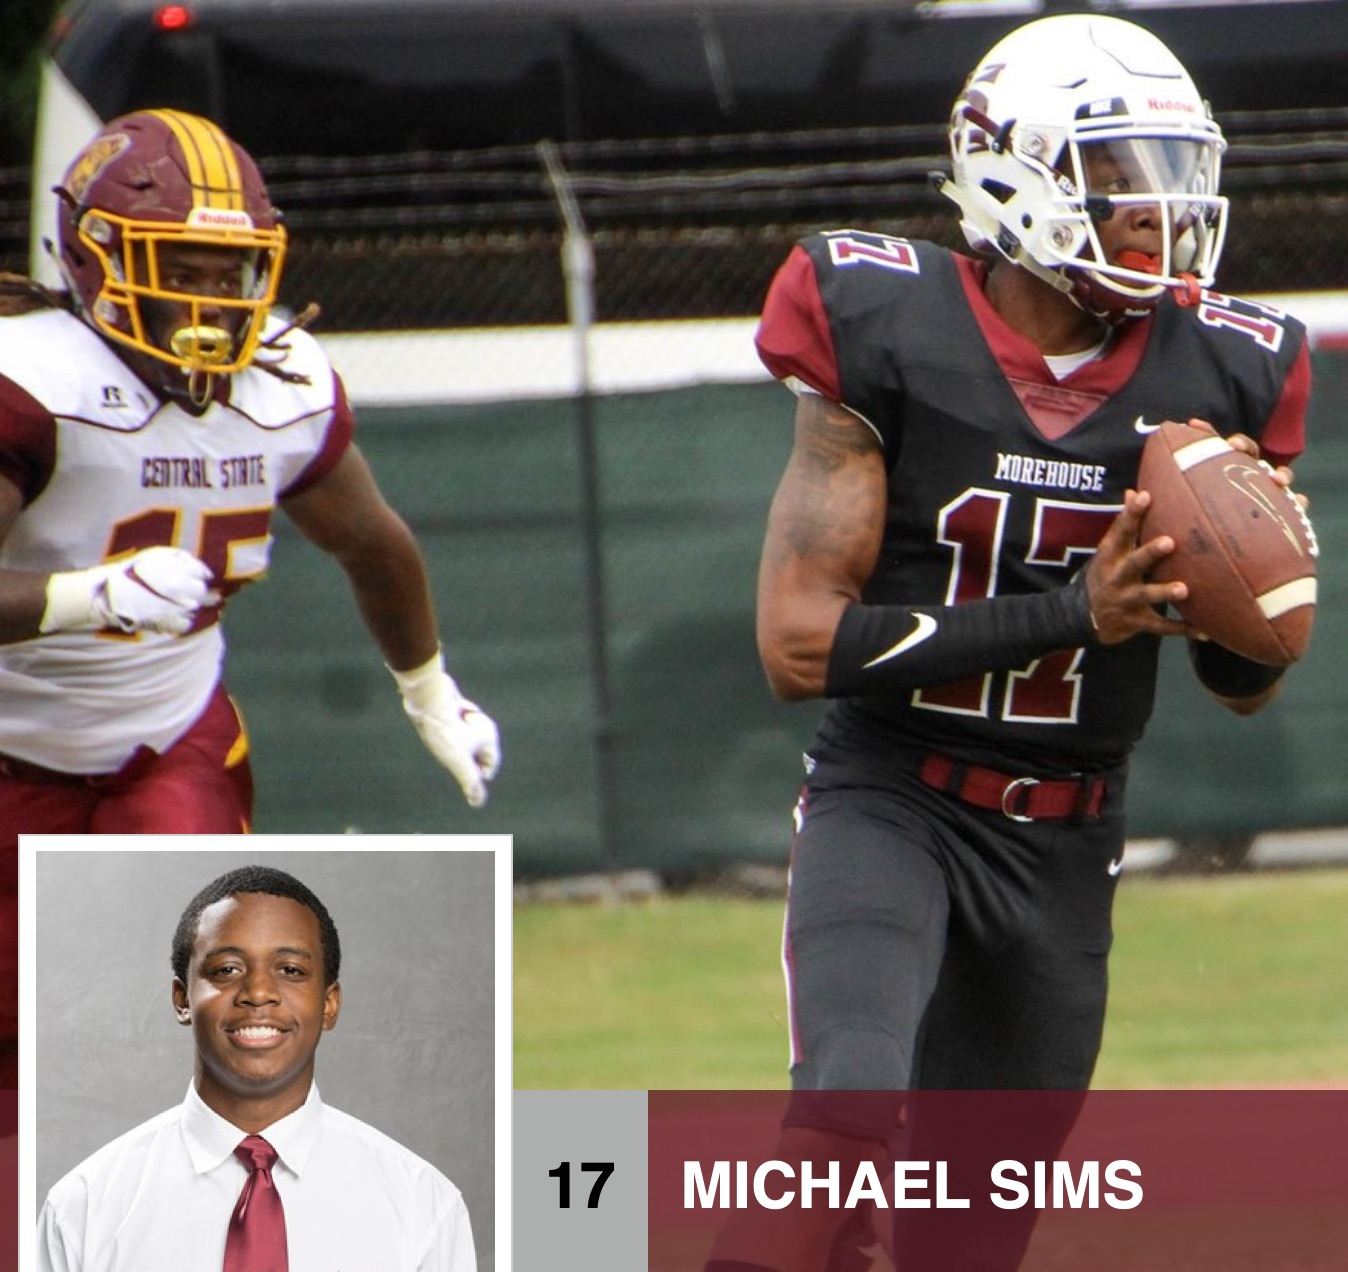 Michael Sims, all-conference quarterback and Bonner Scholar